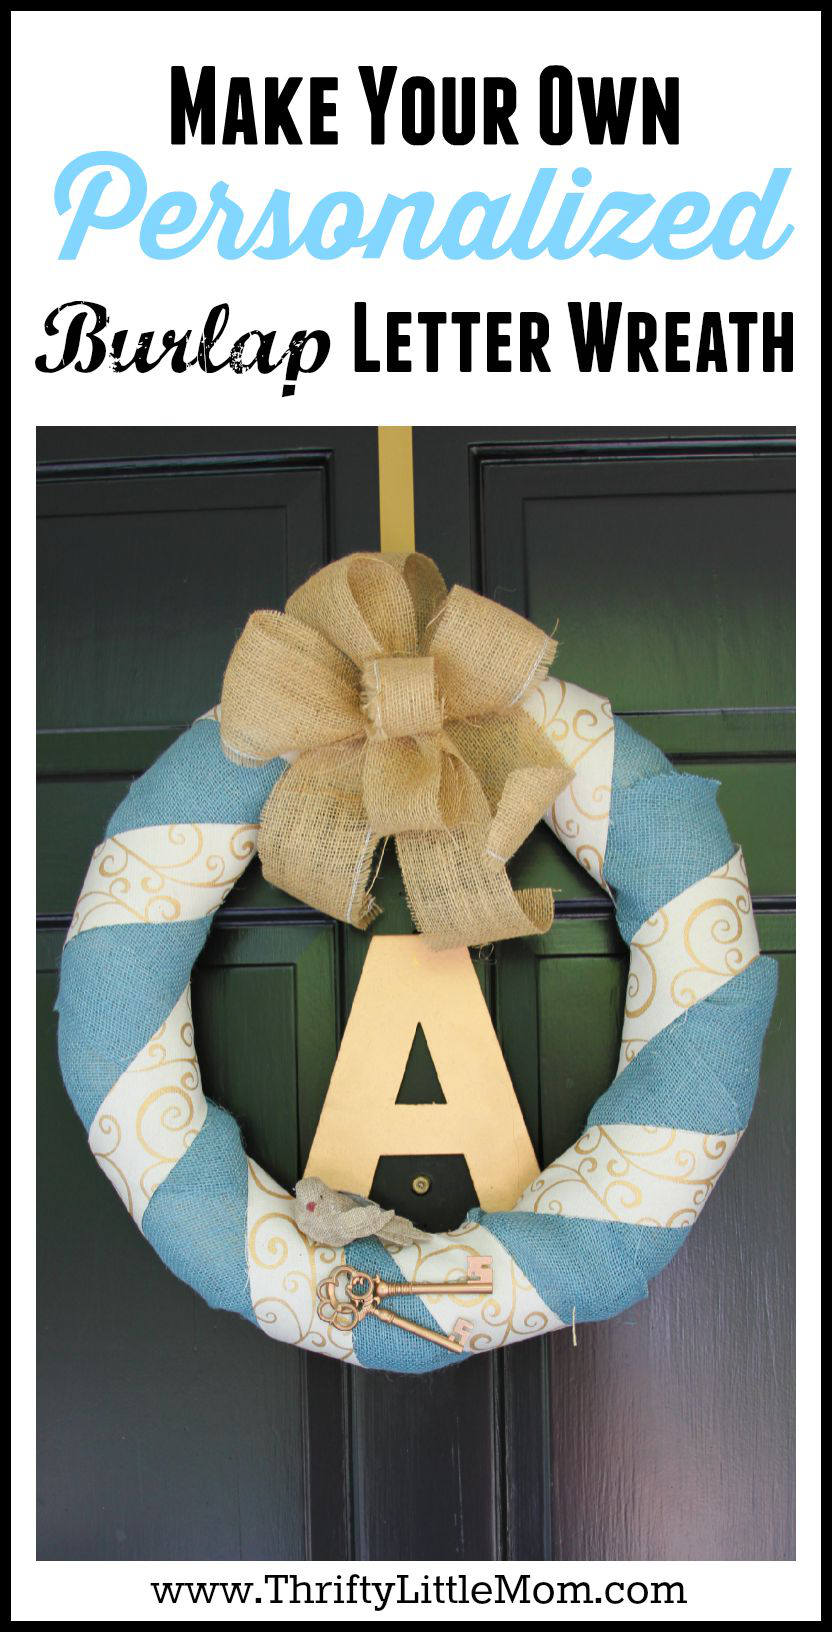 Make Your Own Personalized Burlap Letter Wreath